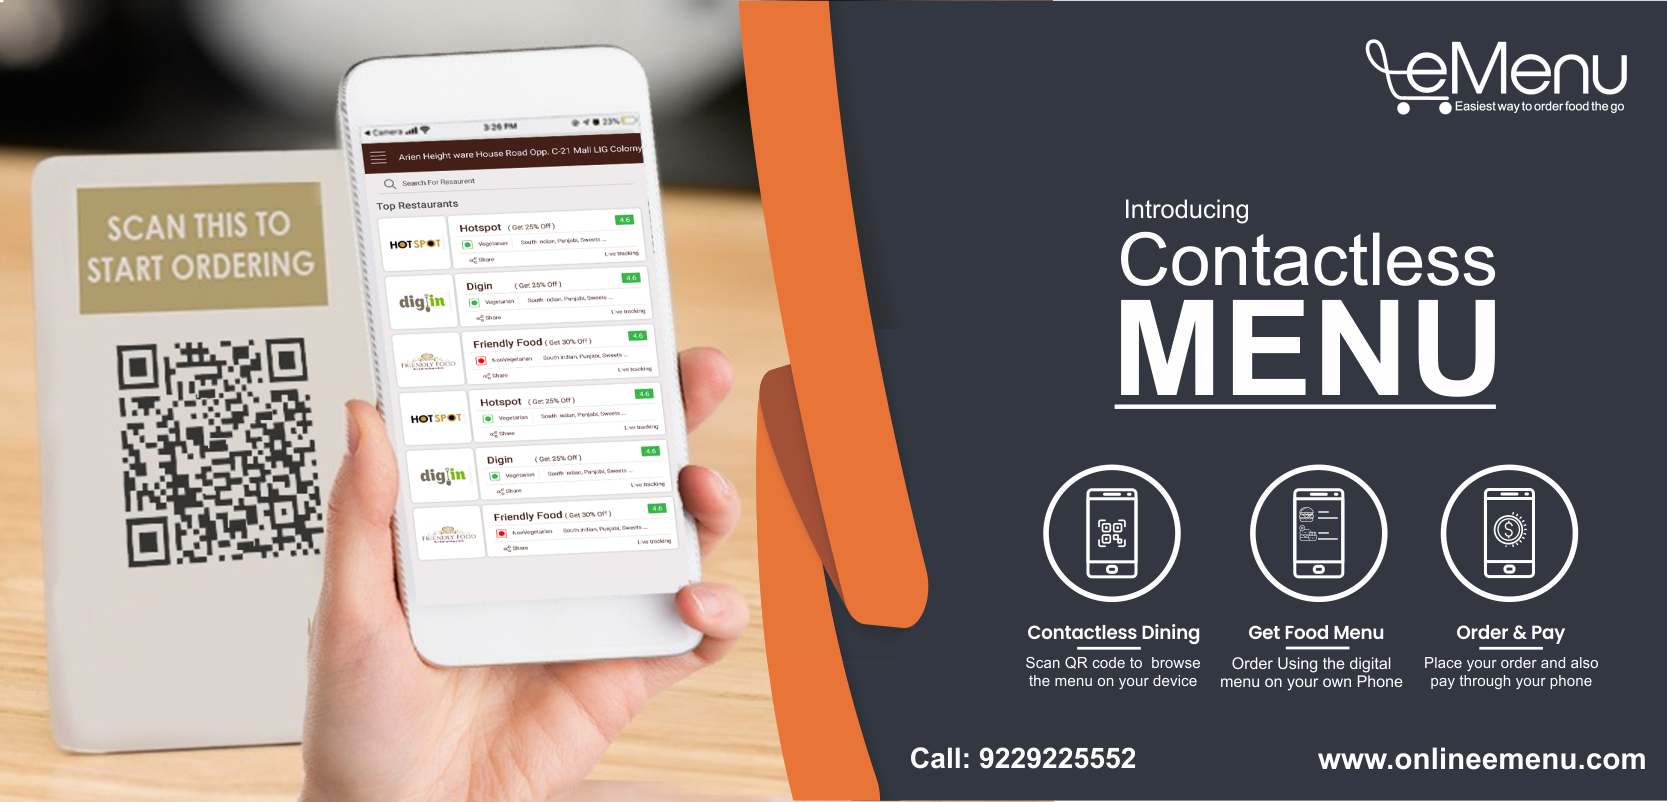 Refurnish your restaurant menu with a contactless ordering system